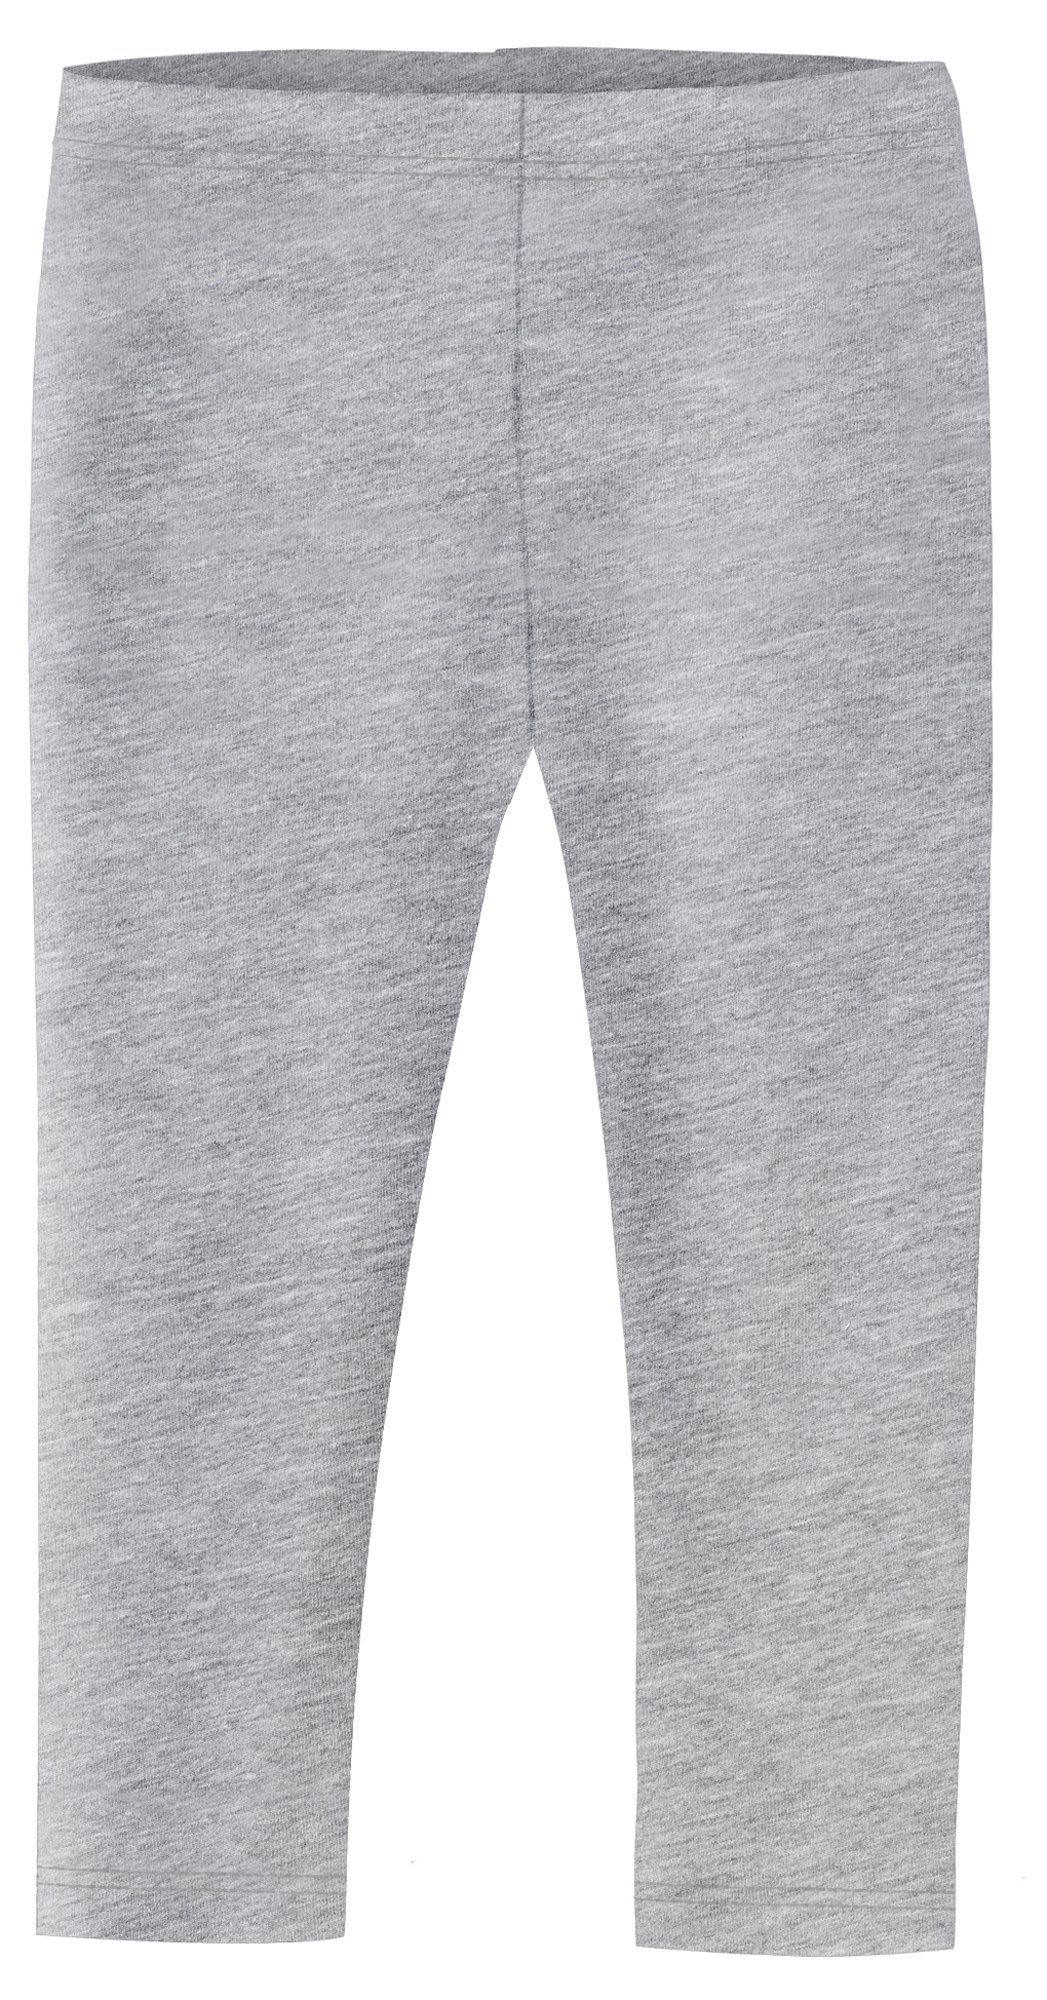 Big Girls' Cotton/Poly (90/10) Cropped Capri Legging For Summer, Play and School, Heather Gray, 16